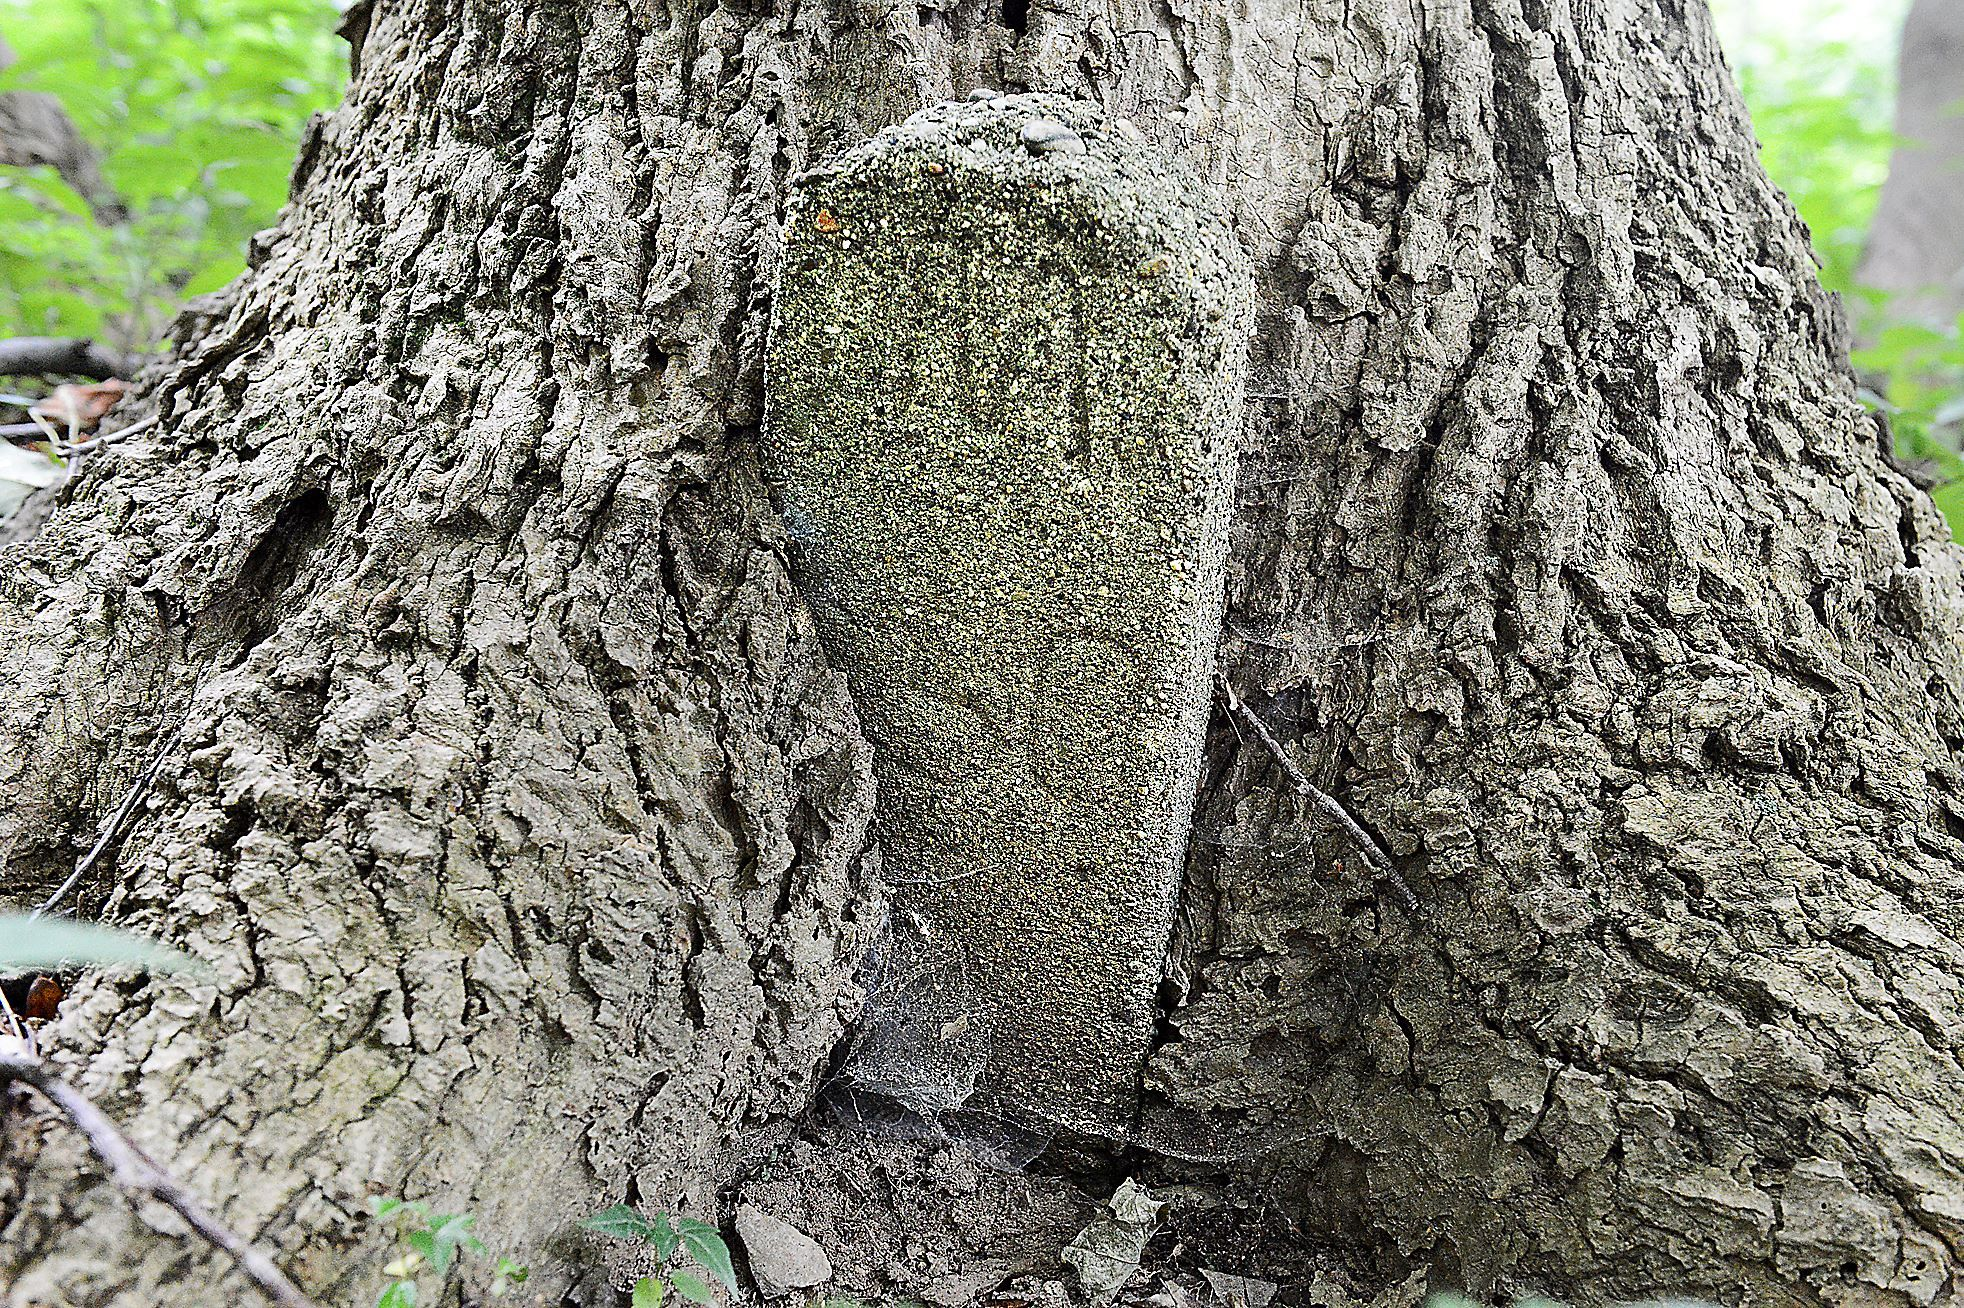 Bob Donaldson/Post-Gazette A tree has grown around an old grave marker at Dixmont Cemetery in the woods behind the former Dixmont State Hospital property in Kilbuck.